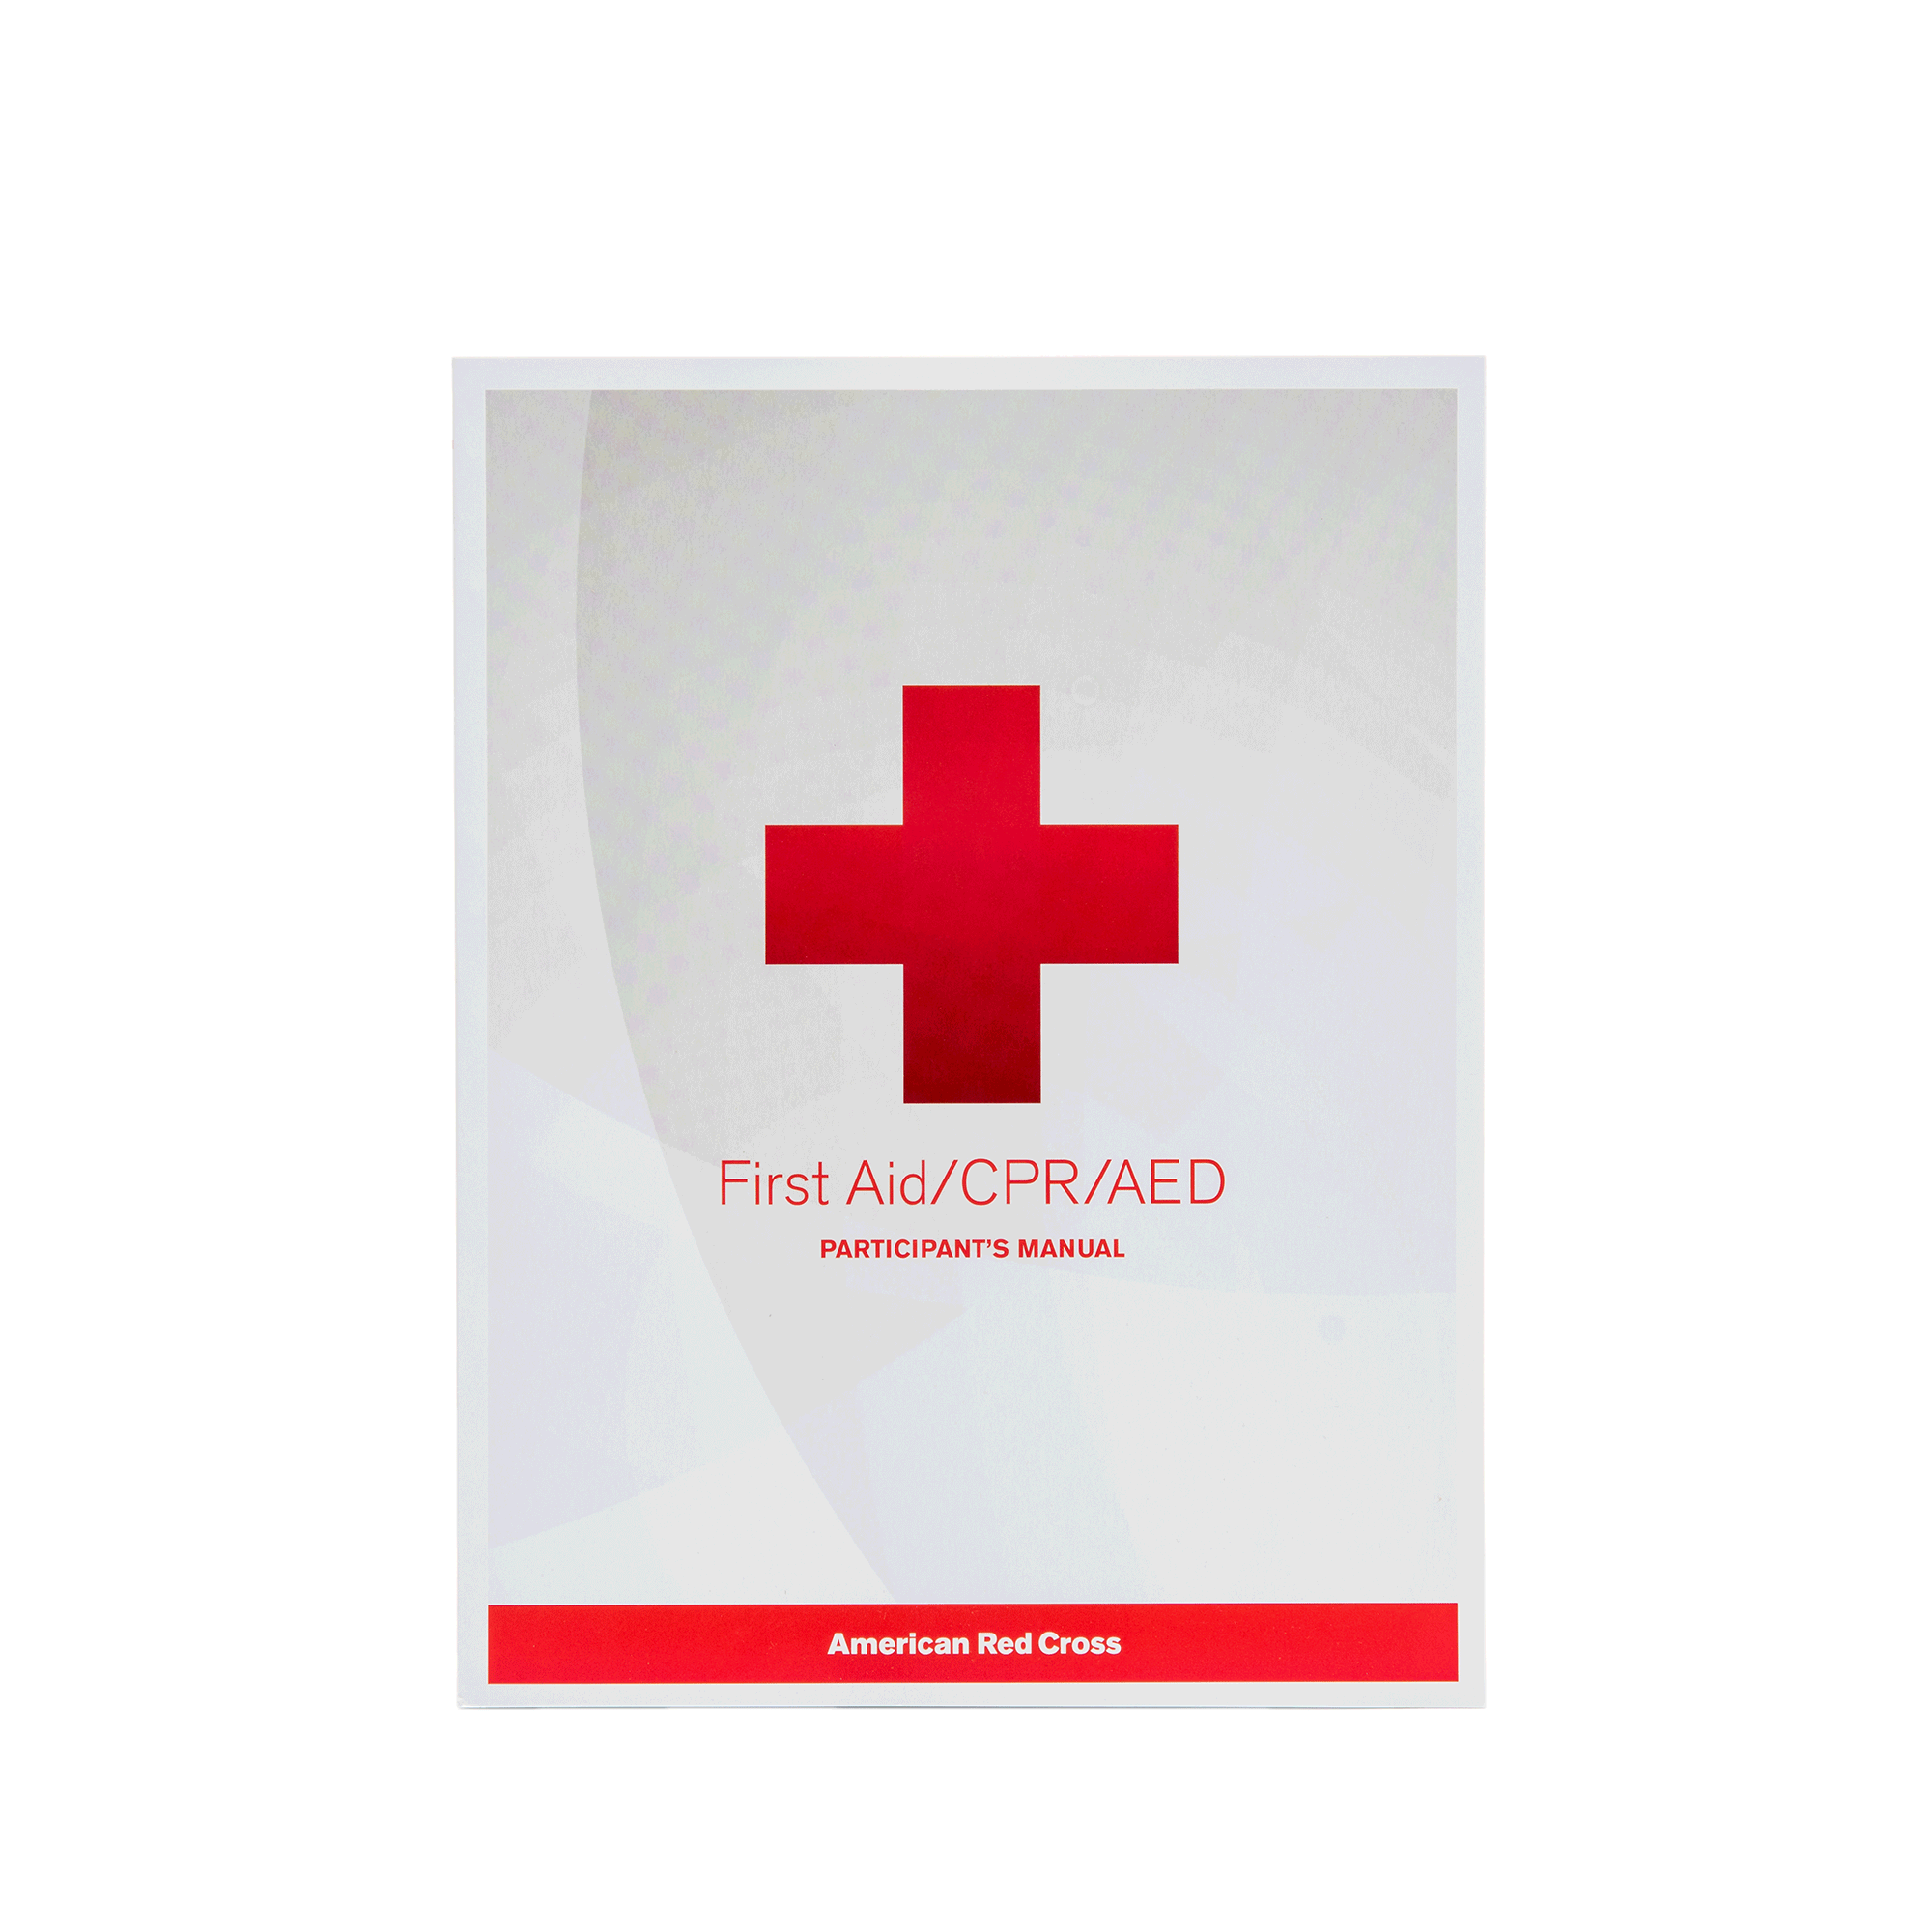 photo relating to Free Printable First Aid Guide named Initially Support/CPR/AED Manuals, Guides, DVDs Crimson Cross Shop